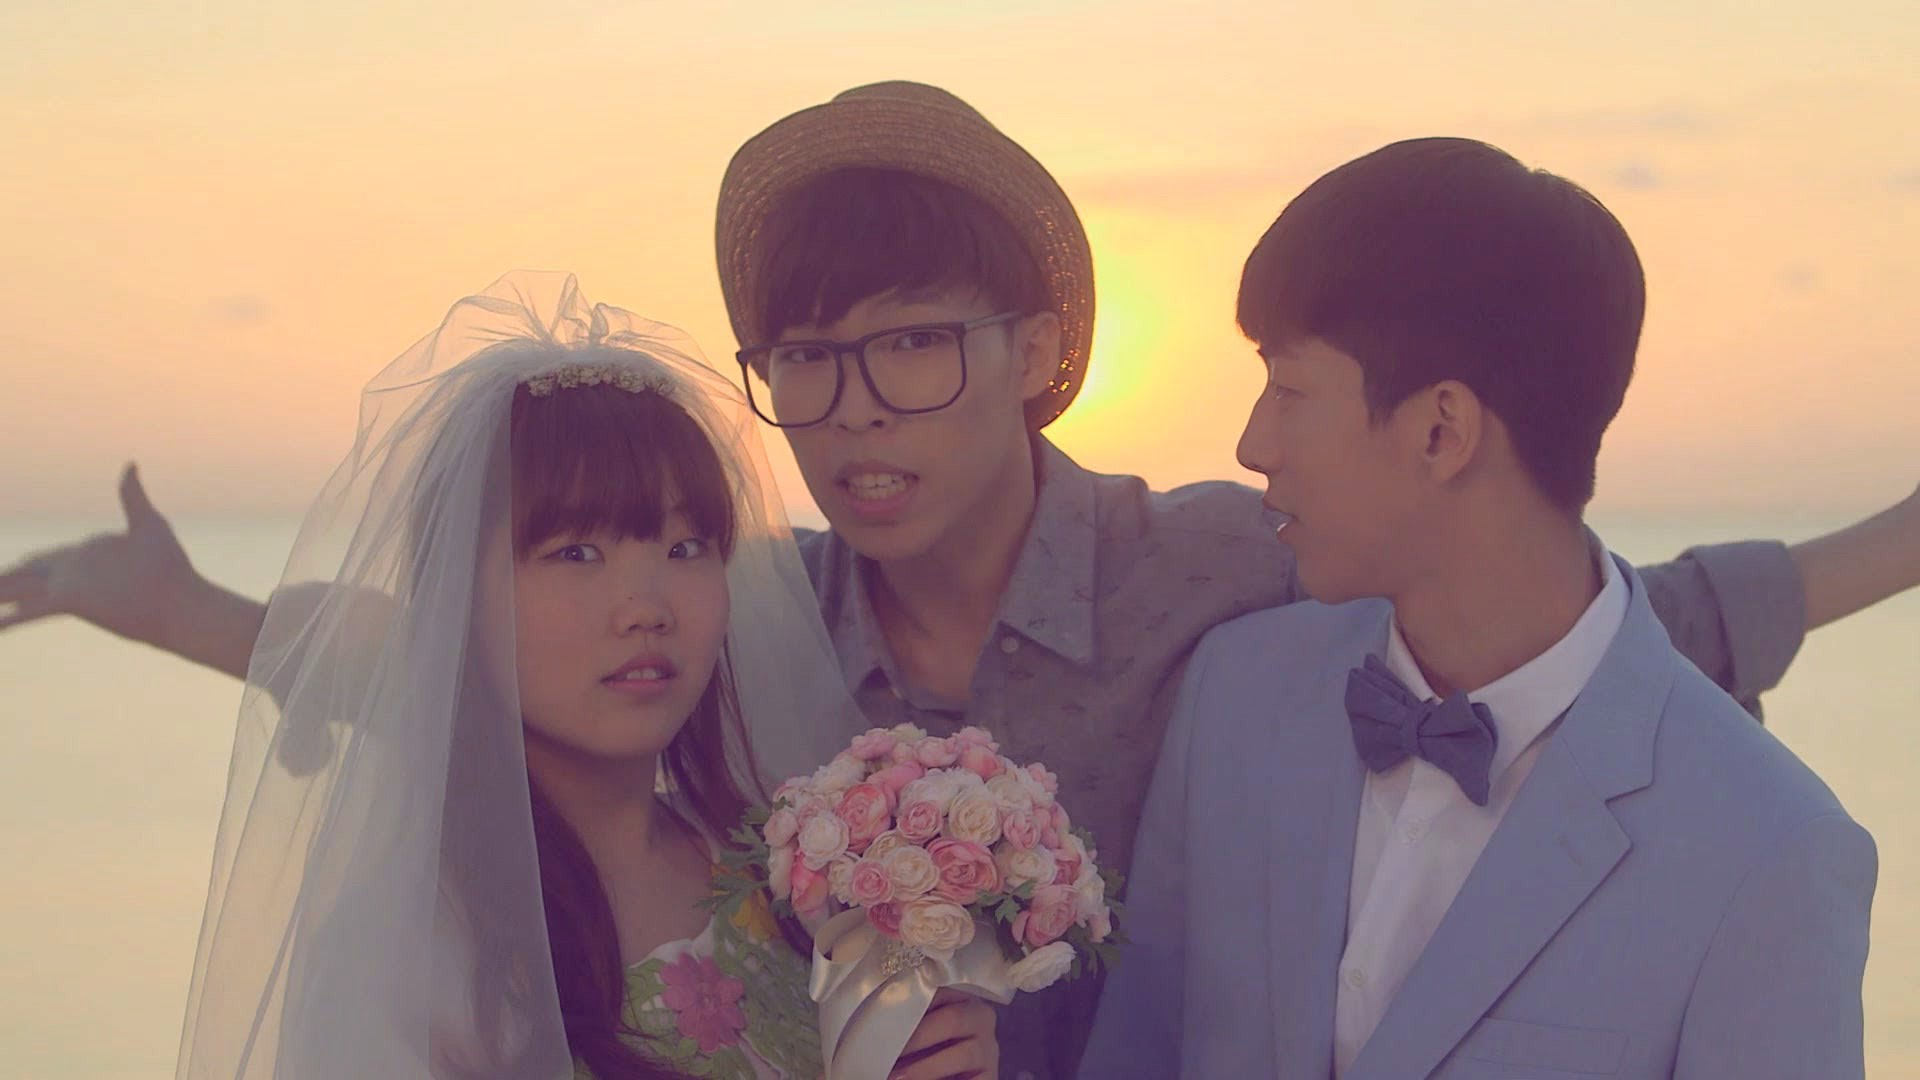 Iphone Wallpaper Pinterest Akmu Full Hd 壁纸 And 背景 1920x1080 Id 511126